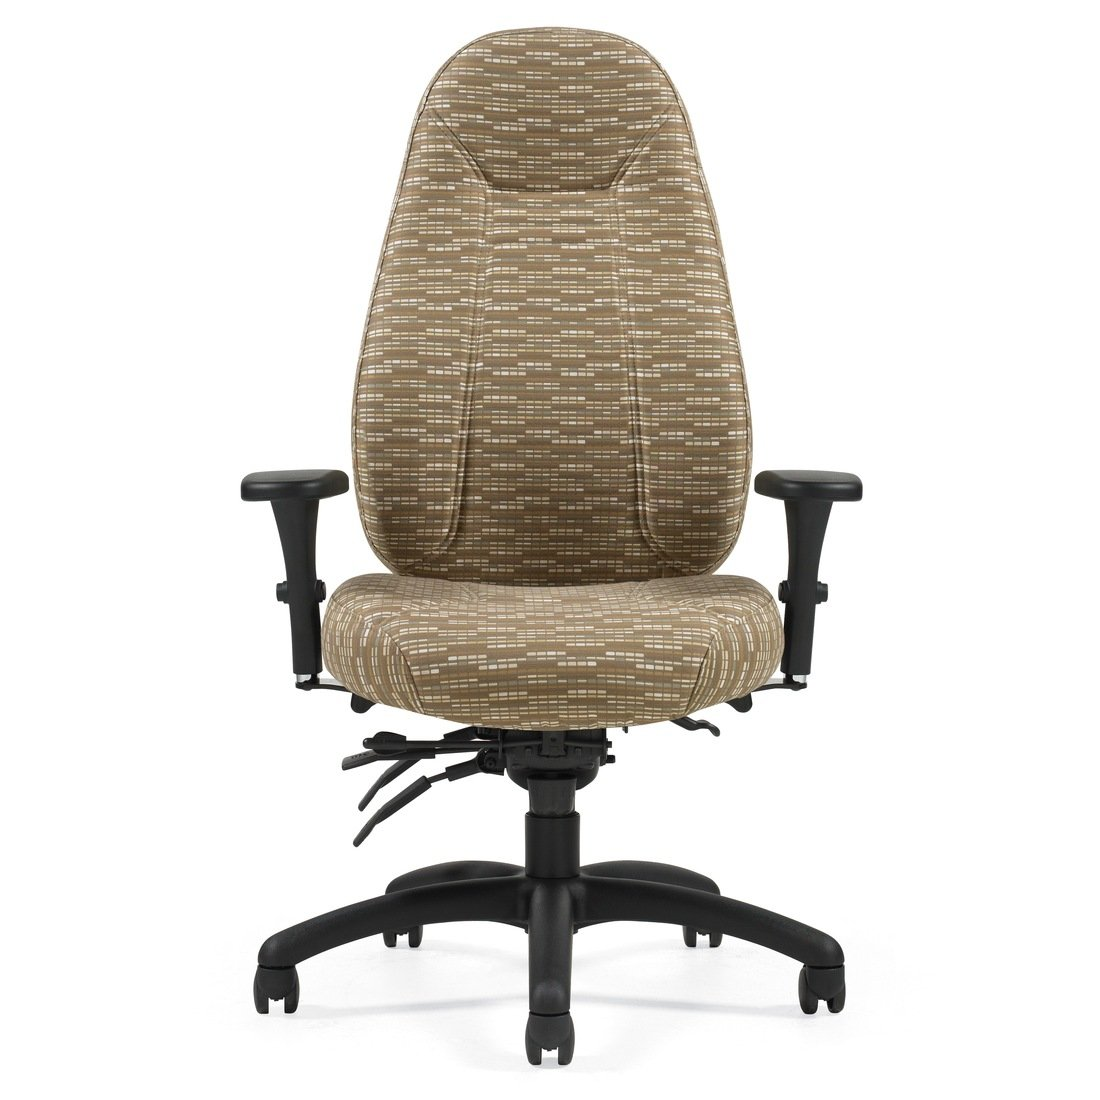 Obusforme Comfort high back heavy duty multi-tilter chair, model TS1240-3. This chair has been placed on a white background.